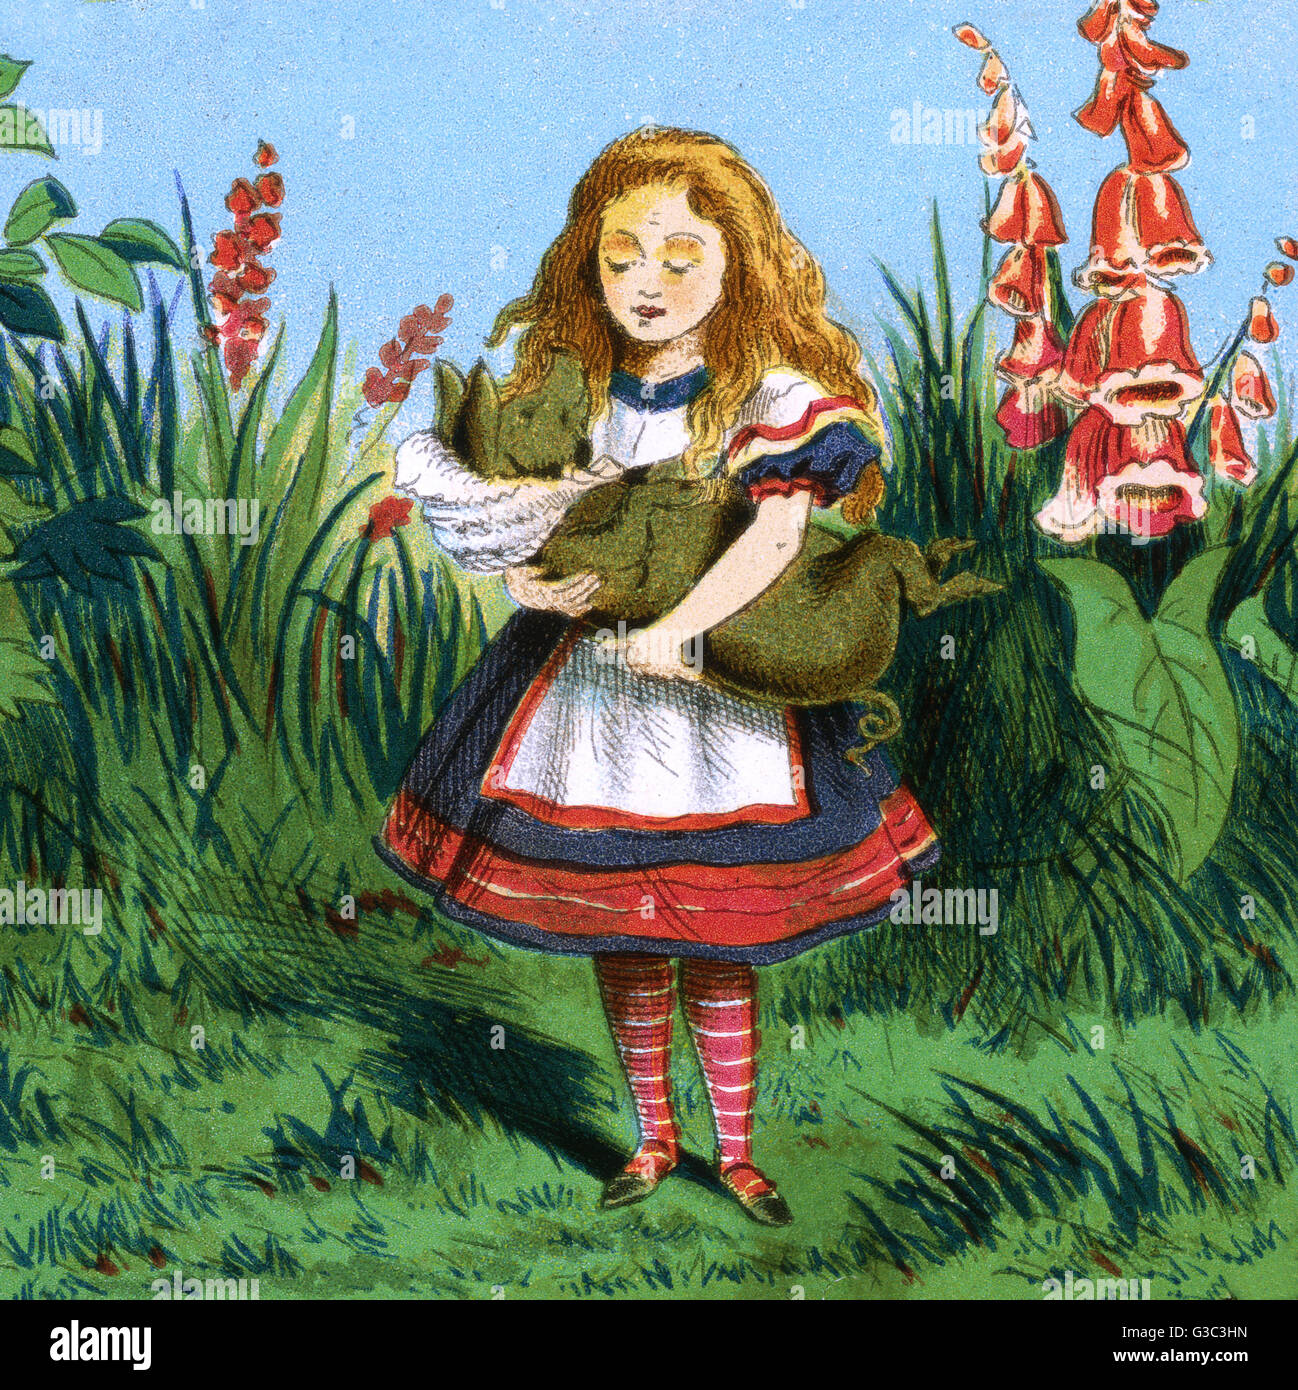 Alice in Wonderland, Alice carries the baby which has turned into a pig.      Date: early 20th century - Stock Image